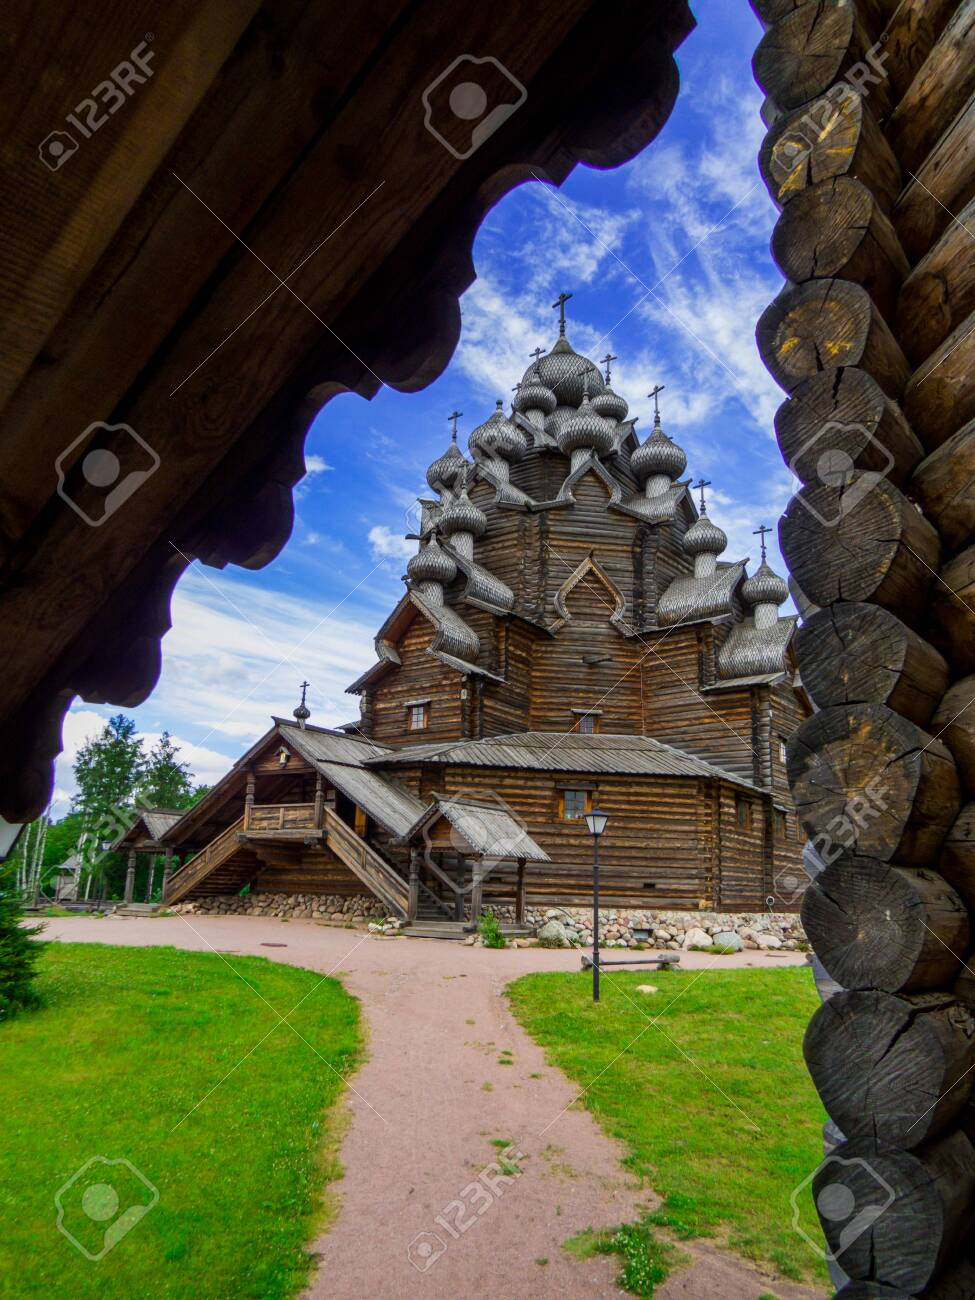 View of the wooden Church of the Intercession of the Holy Virgin in St. Petersburg, Russia - 151391705